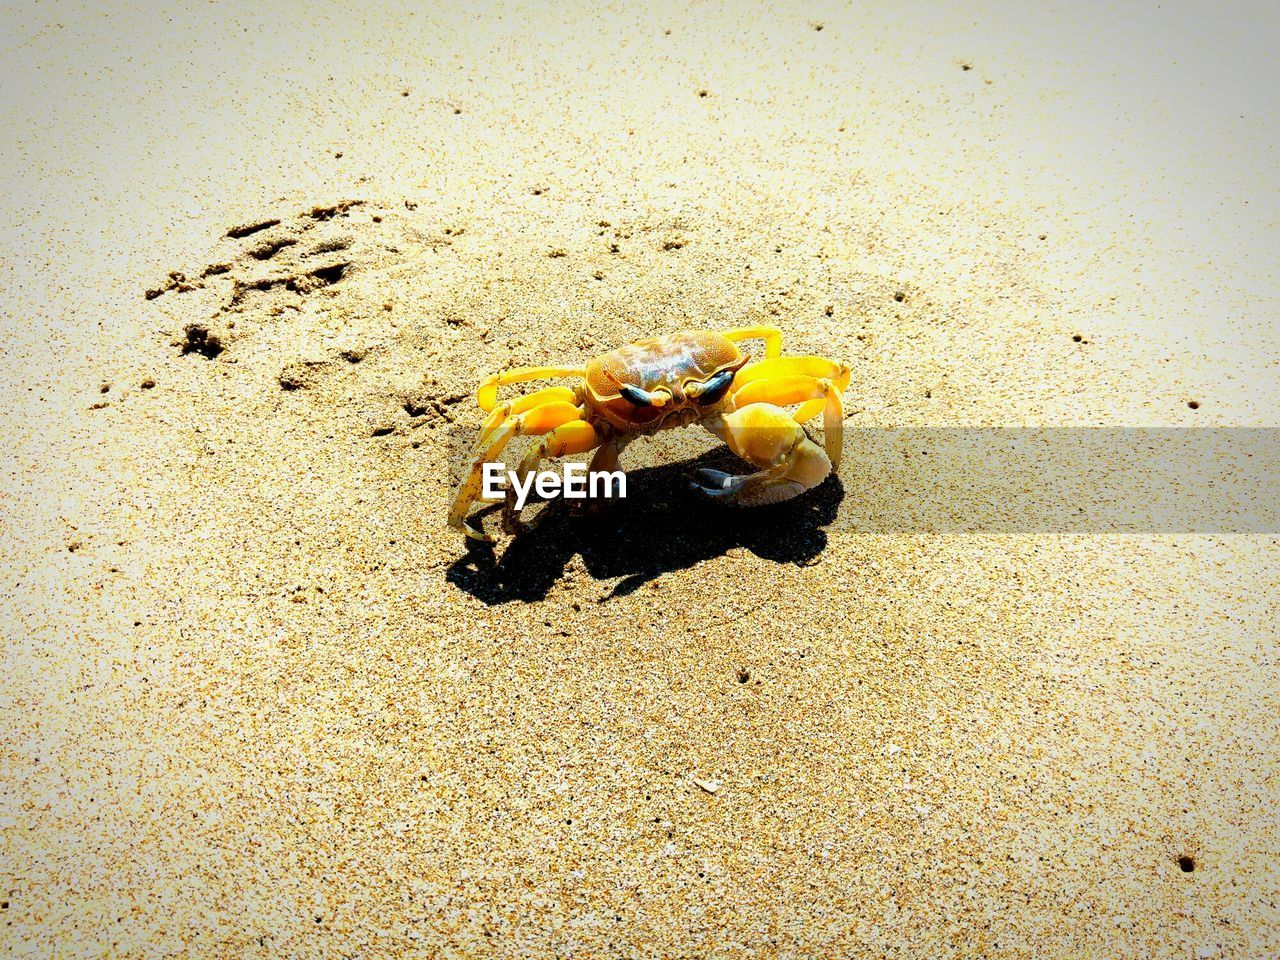 sand, beach, high angle view, animal themes, yellow, nature, no people, day, outdoors, one animal, animals in the wild, sea, sea life, beauty in nature, close-up